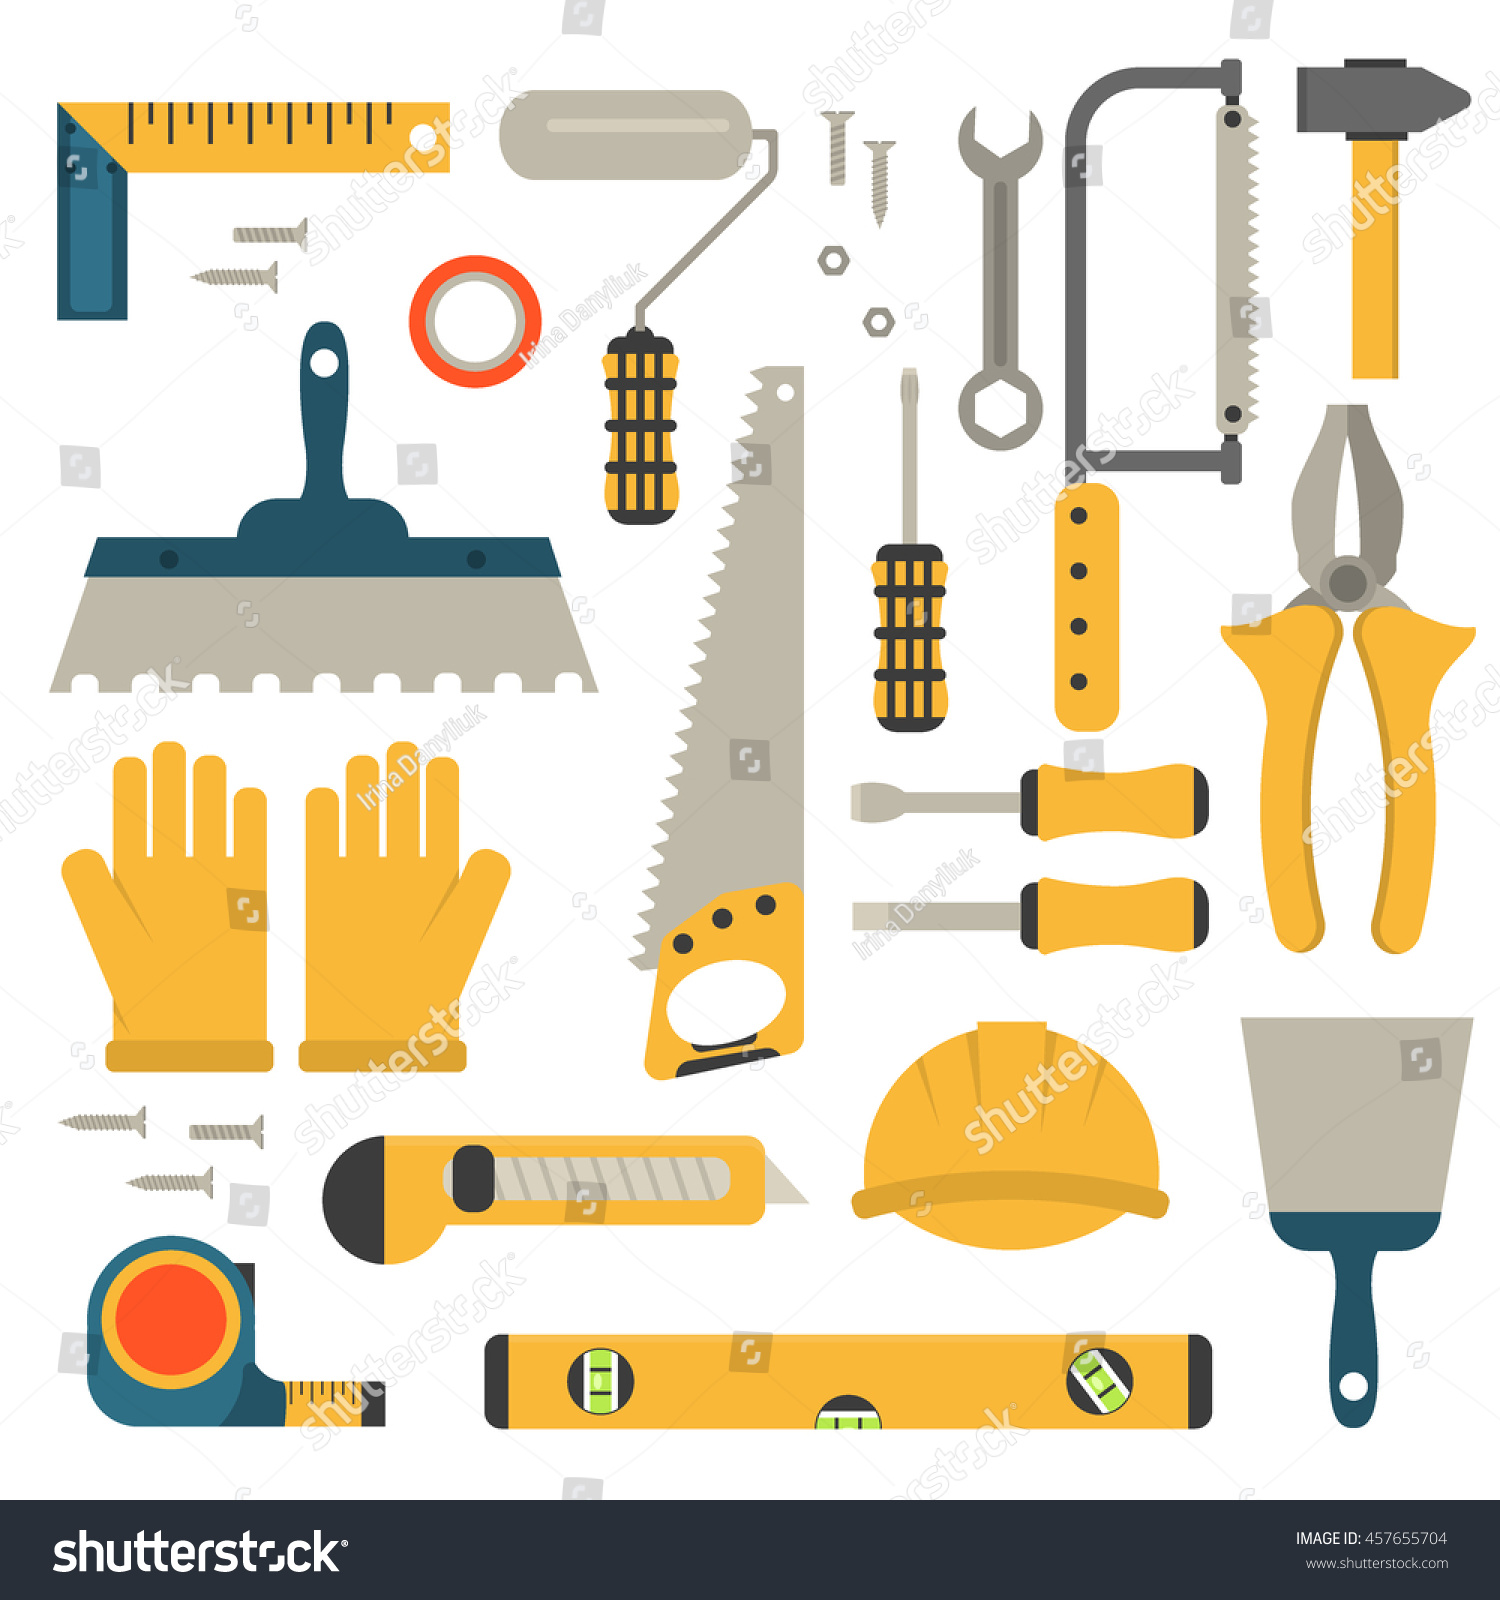 Set Flat Construction Tools Vector Equipment Stock Vector